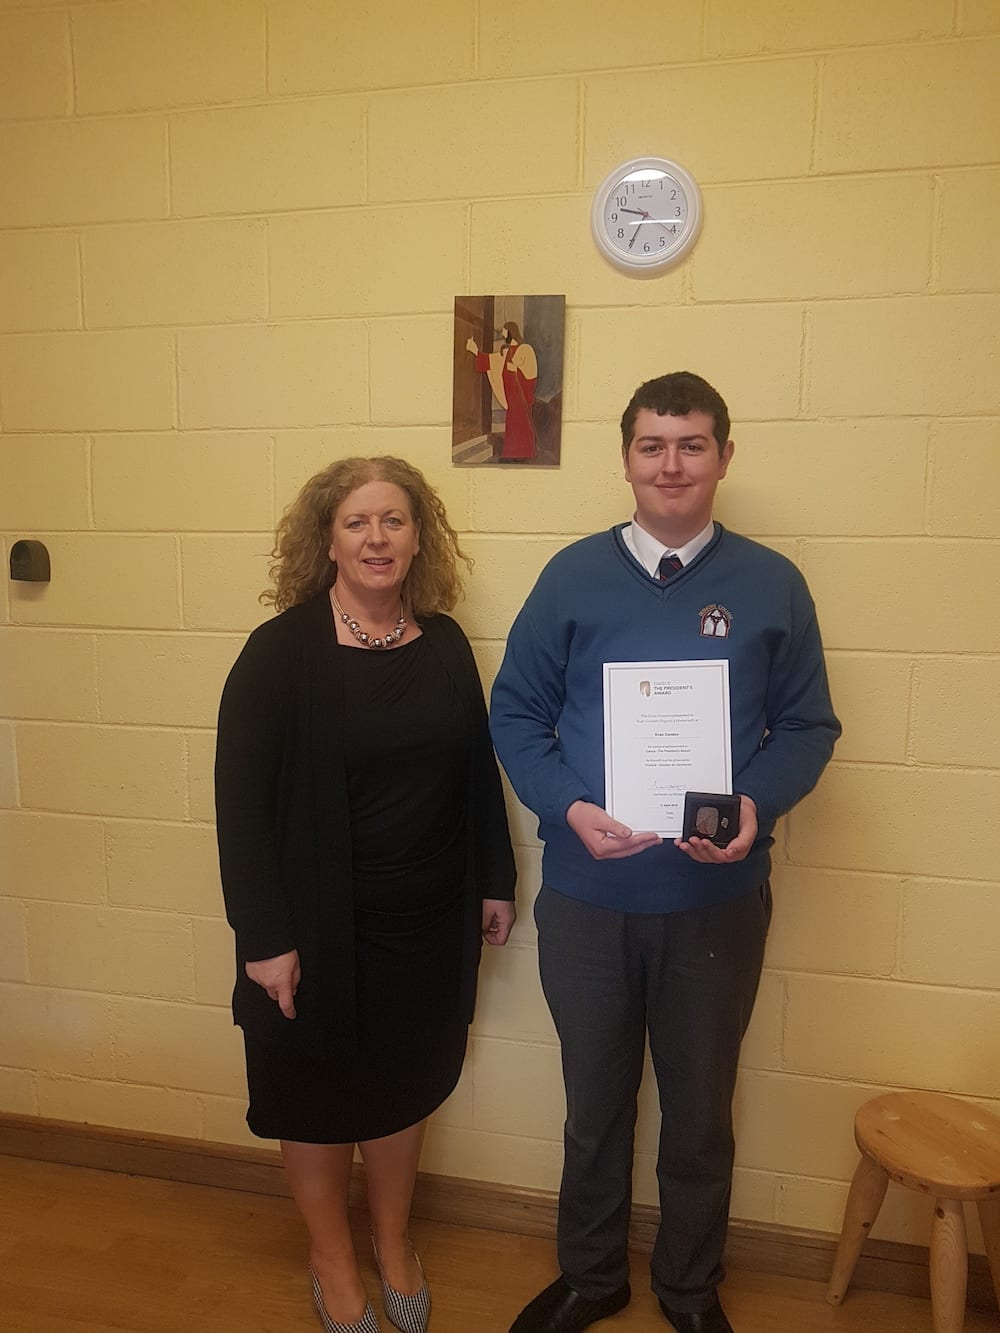 Evan Condon pictured with Desmond College principal, Vourneen Gavin Barry, on receiving his Gaisce President's Award